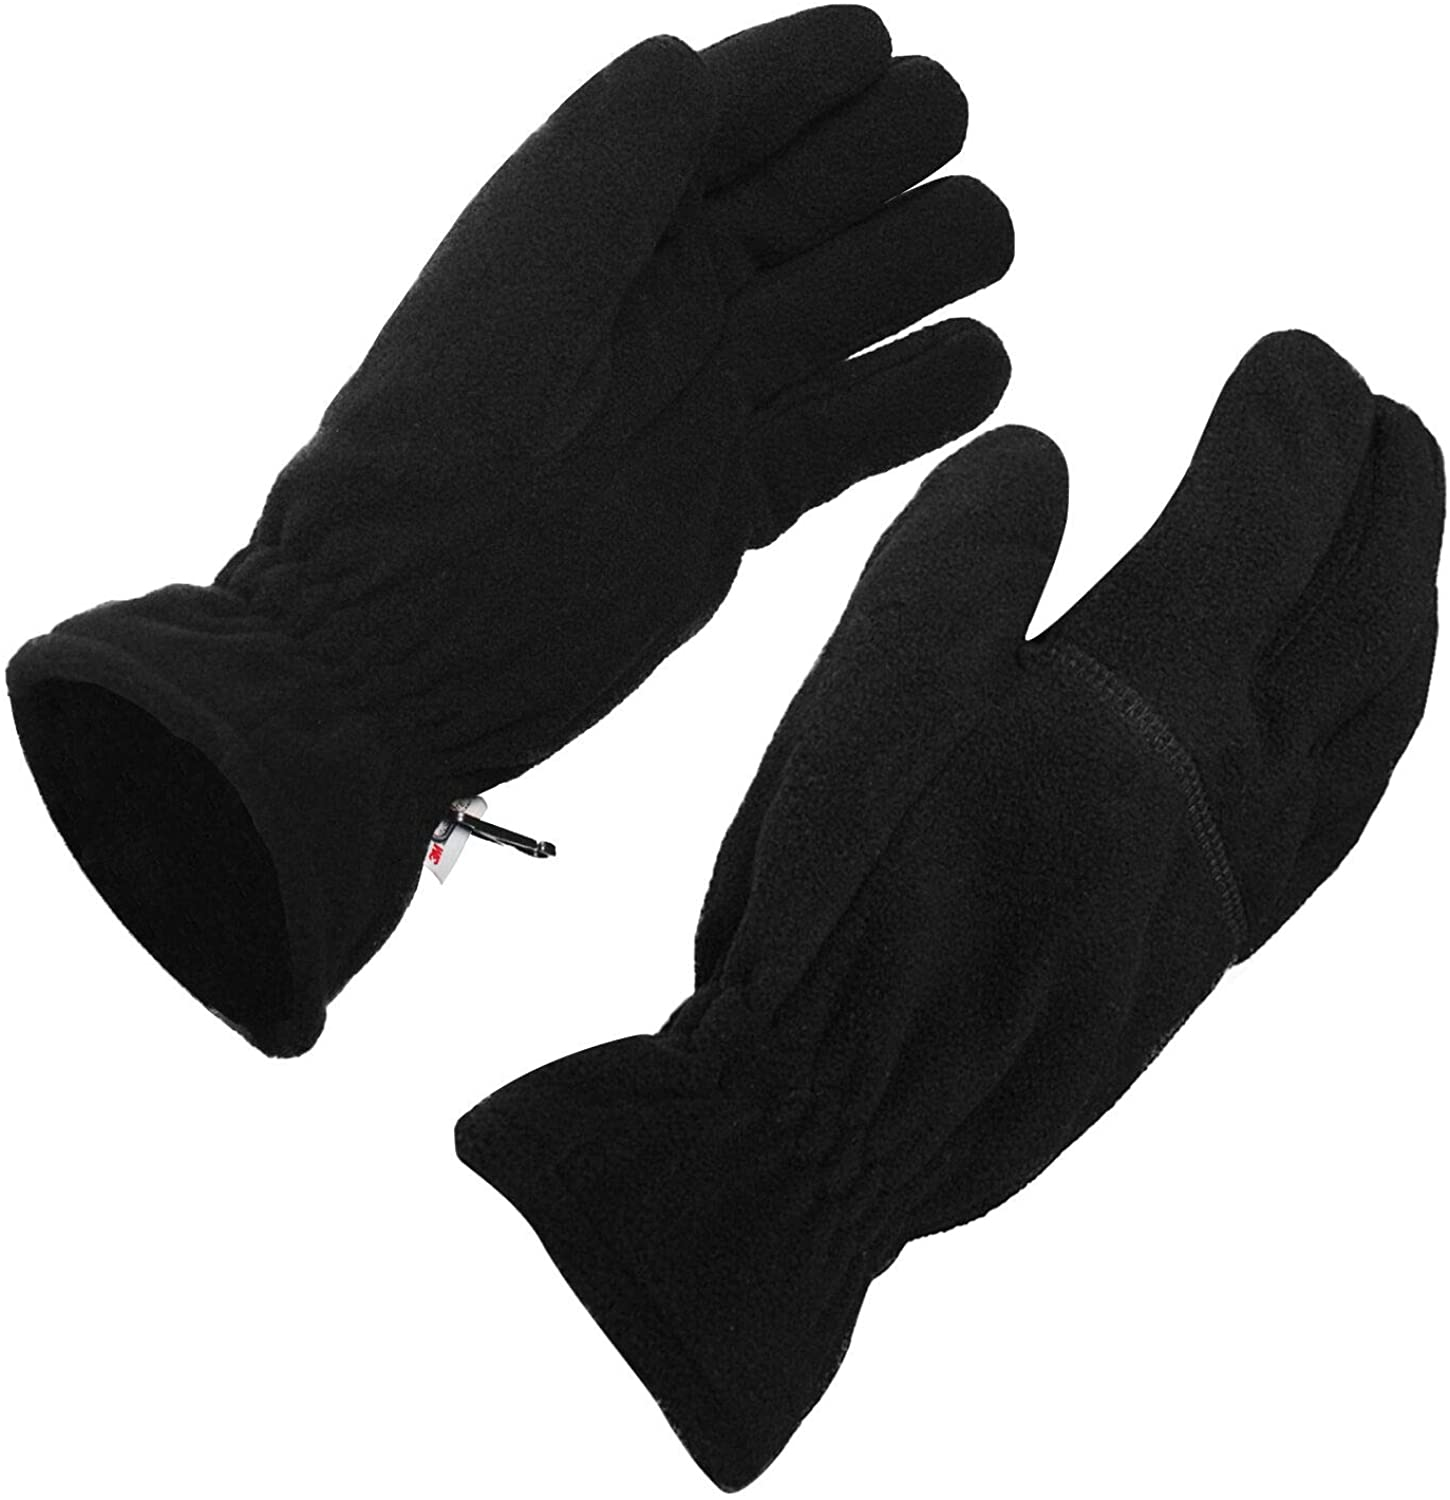 Men's winter gloves Fleece with thinsulate liners for cold weather warmth Thermarator glove (Black L)